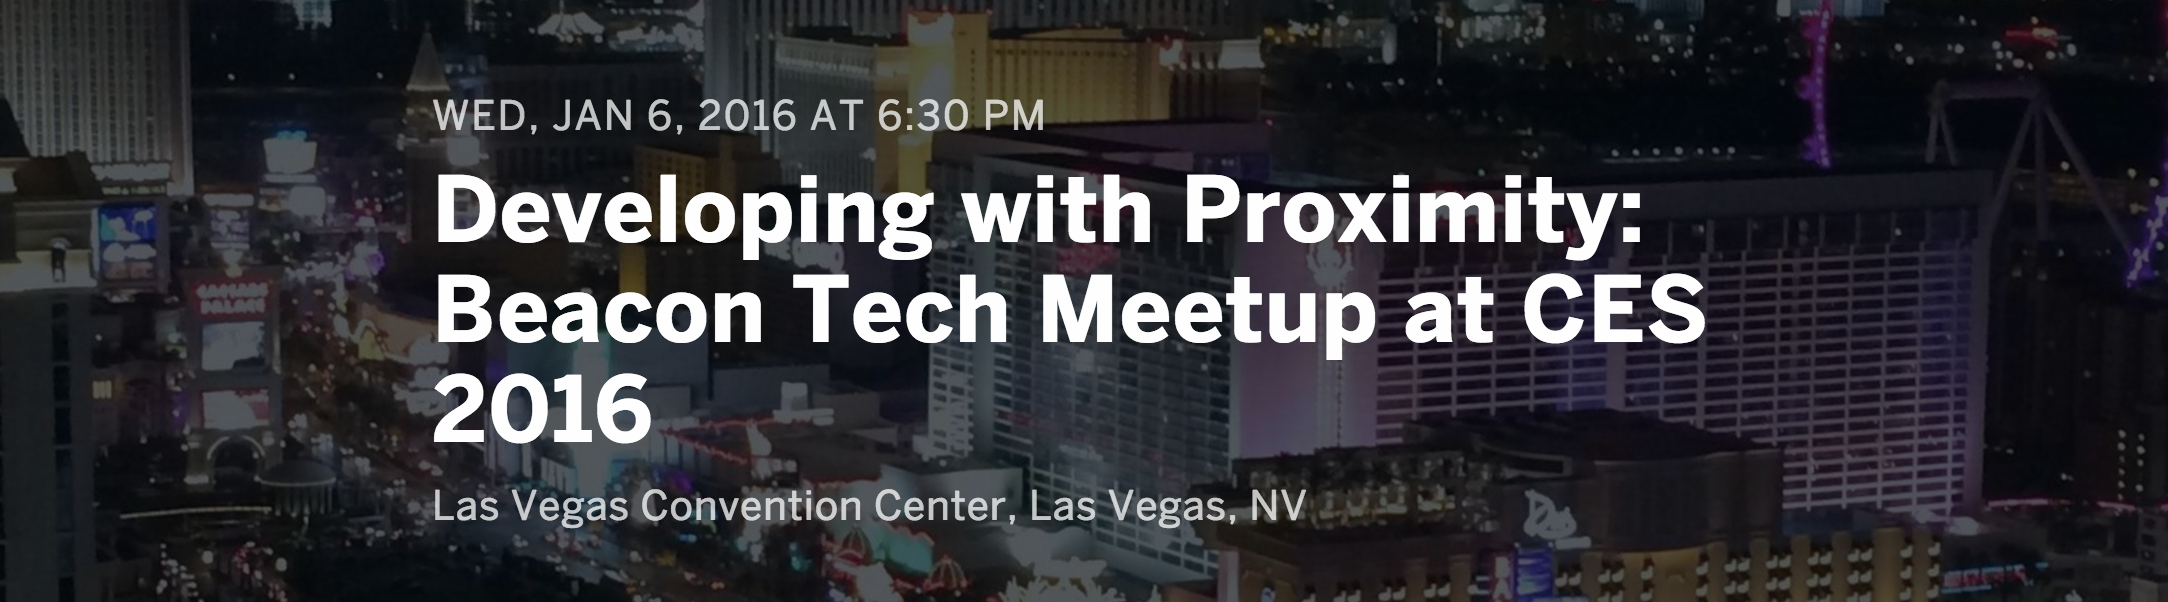 WED, JAN 6, 2016 AT 6:30 PM Developing with Proximity: Beacon Tech Meetup at CES 2016